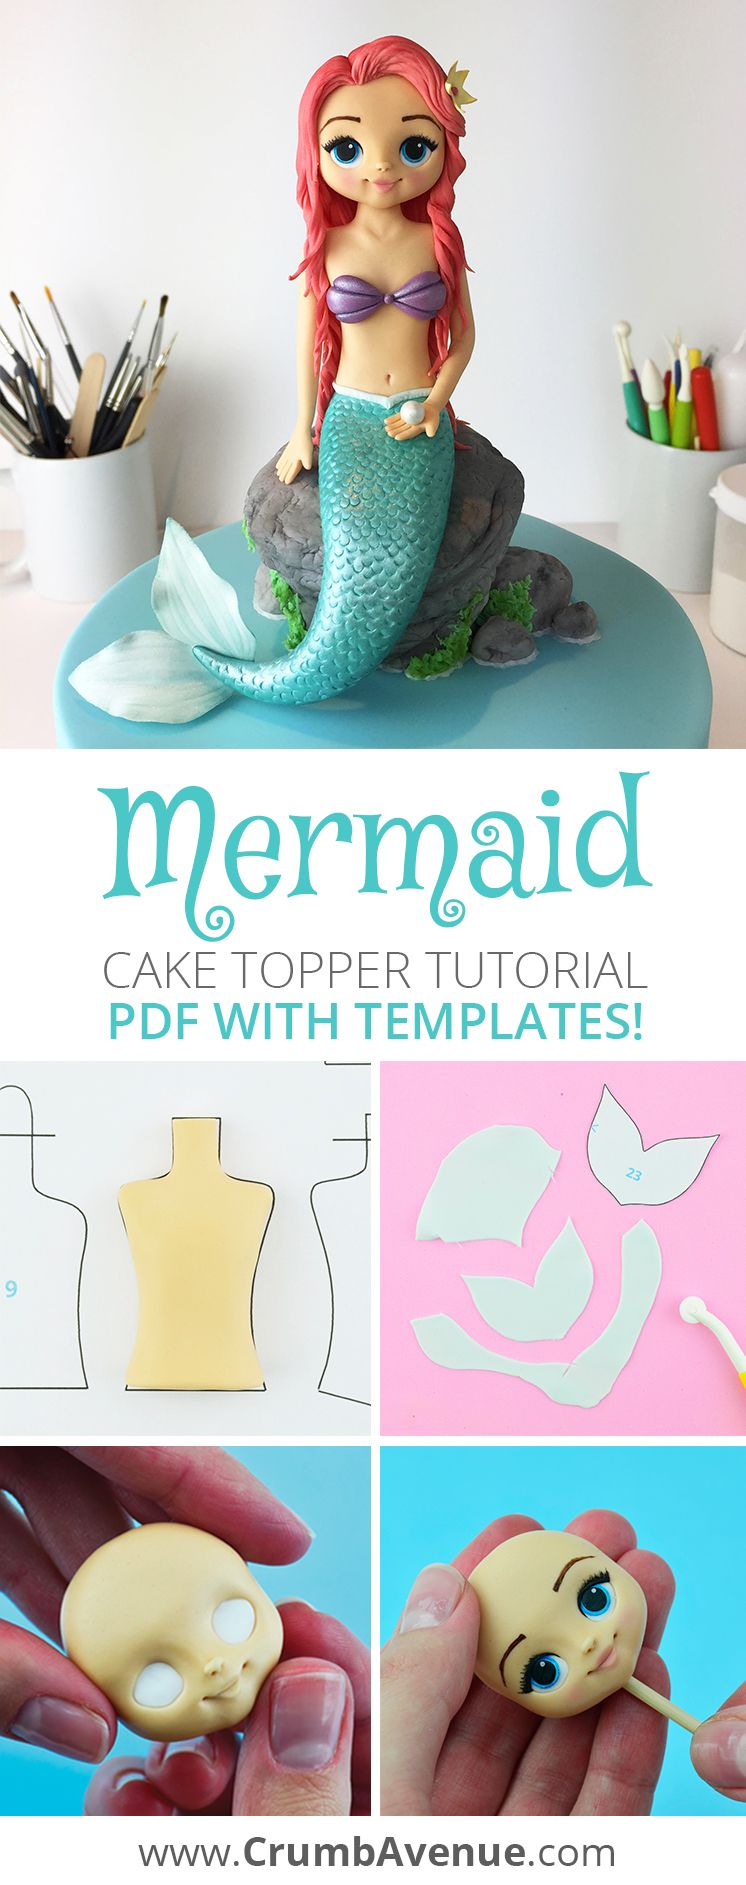 Mermaid Cake Topper Pdf Tutorial With Templates Etsy Mermaid Cake Topper Mermaid Cakes Fondant Girl